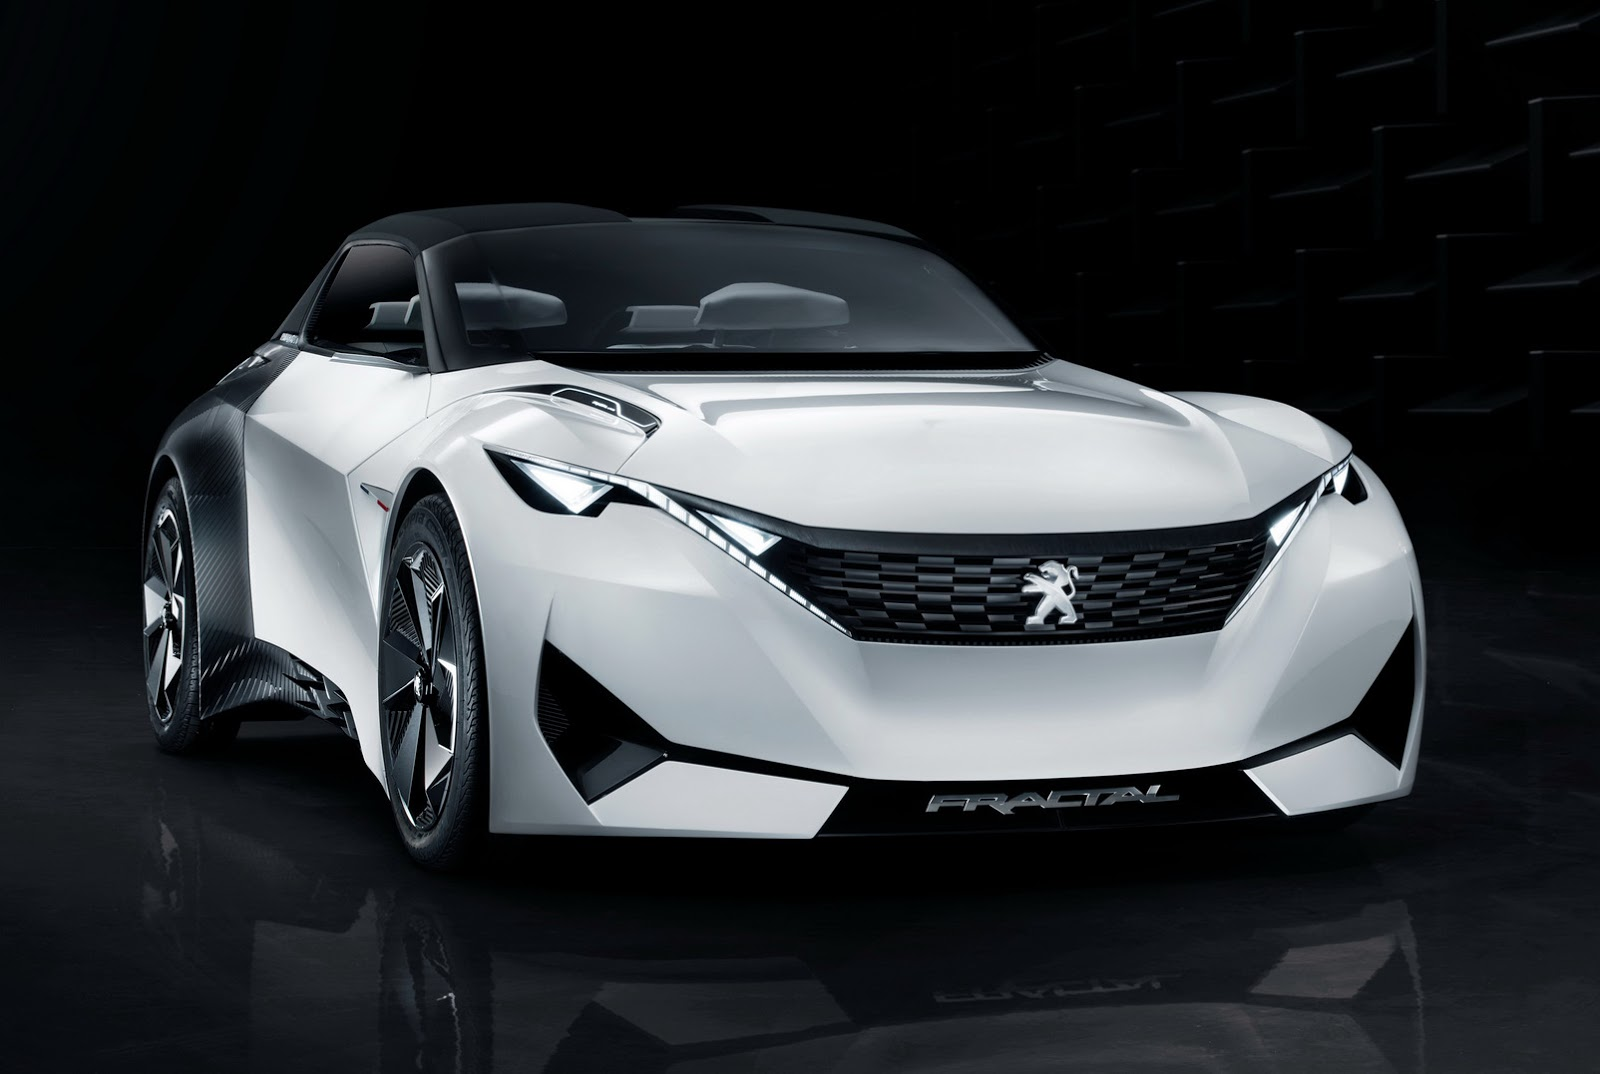 peugeot 39 s new fractal coupe hatch convertible concept in all its photo glory carscoops. Black Bedroom Furniture Sets. Home Design Ideas